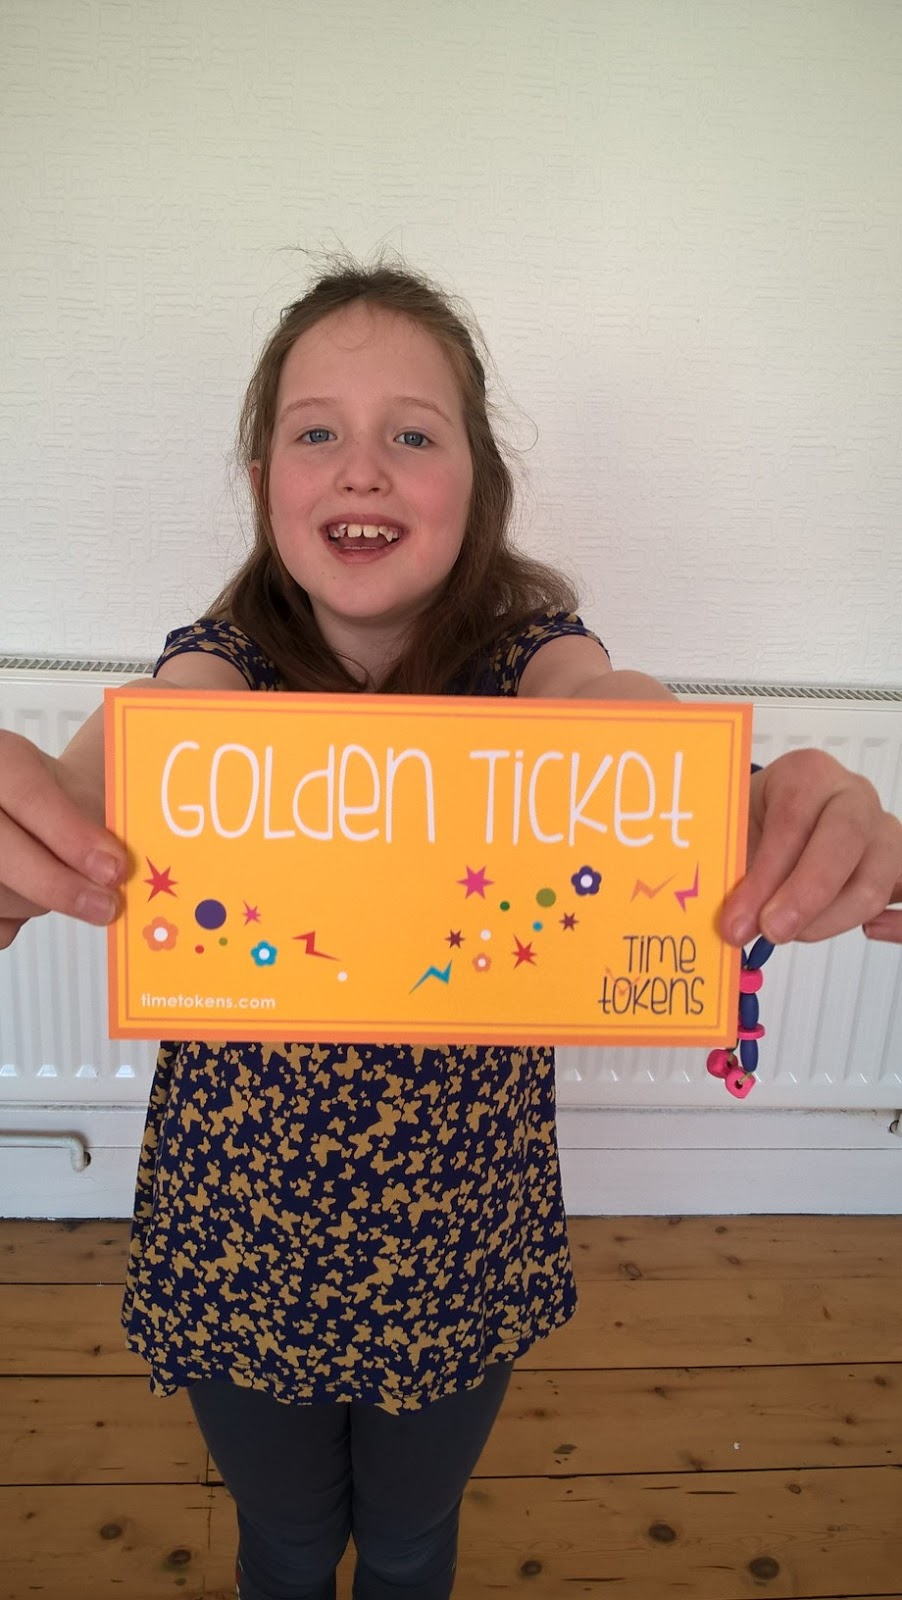 Caitlin Hobbis holding the Time Tokens Golden Ticket - Children's Product Reviews - motherdistracted.co.uk